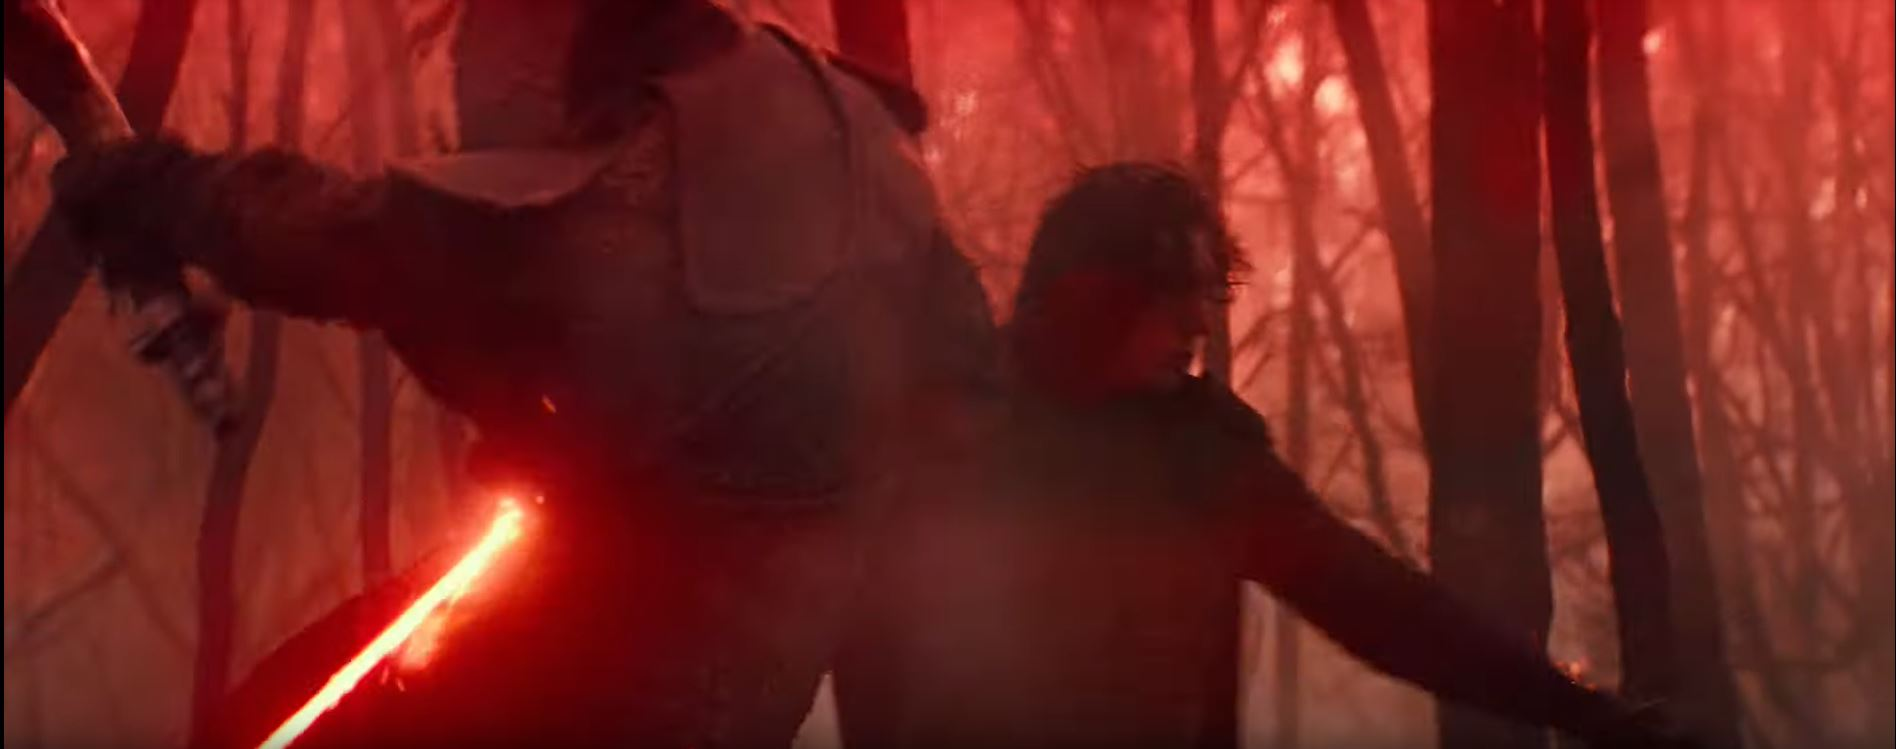 Star Wars The Rise of Skywalker Kylo Ren (Adam Driver) cutting down soldier